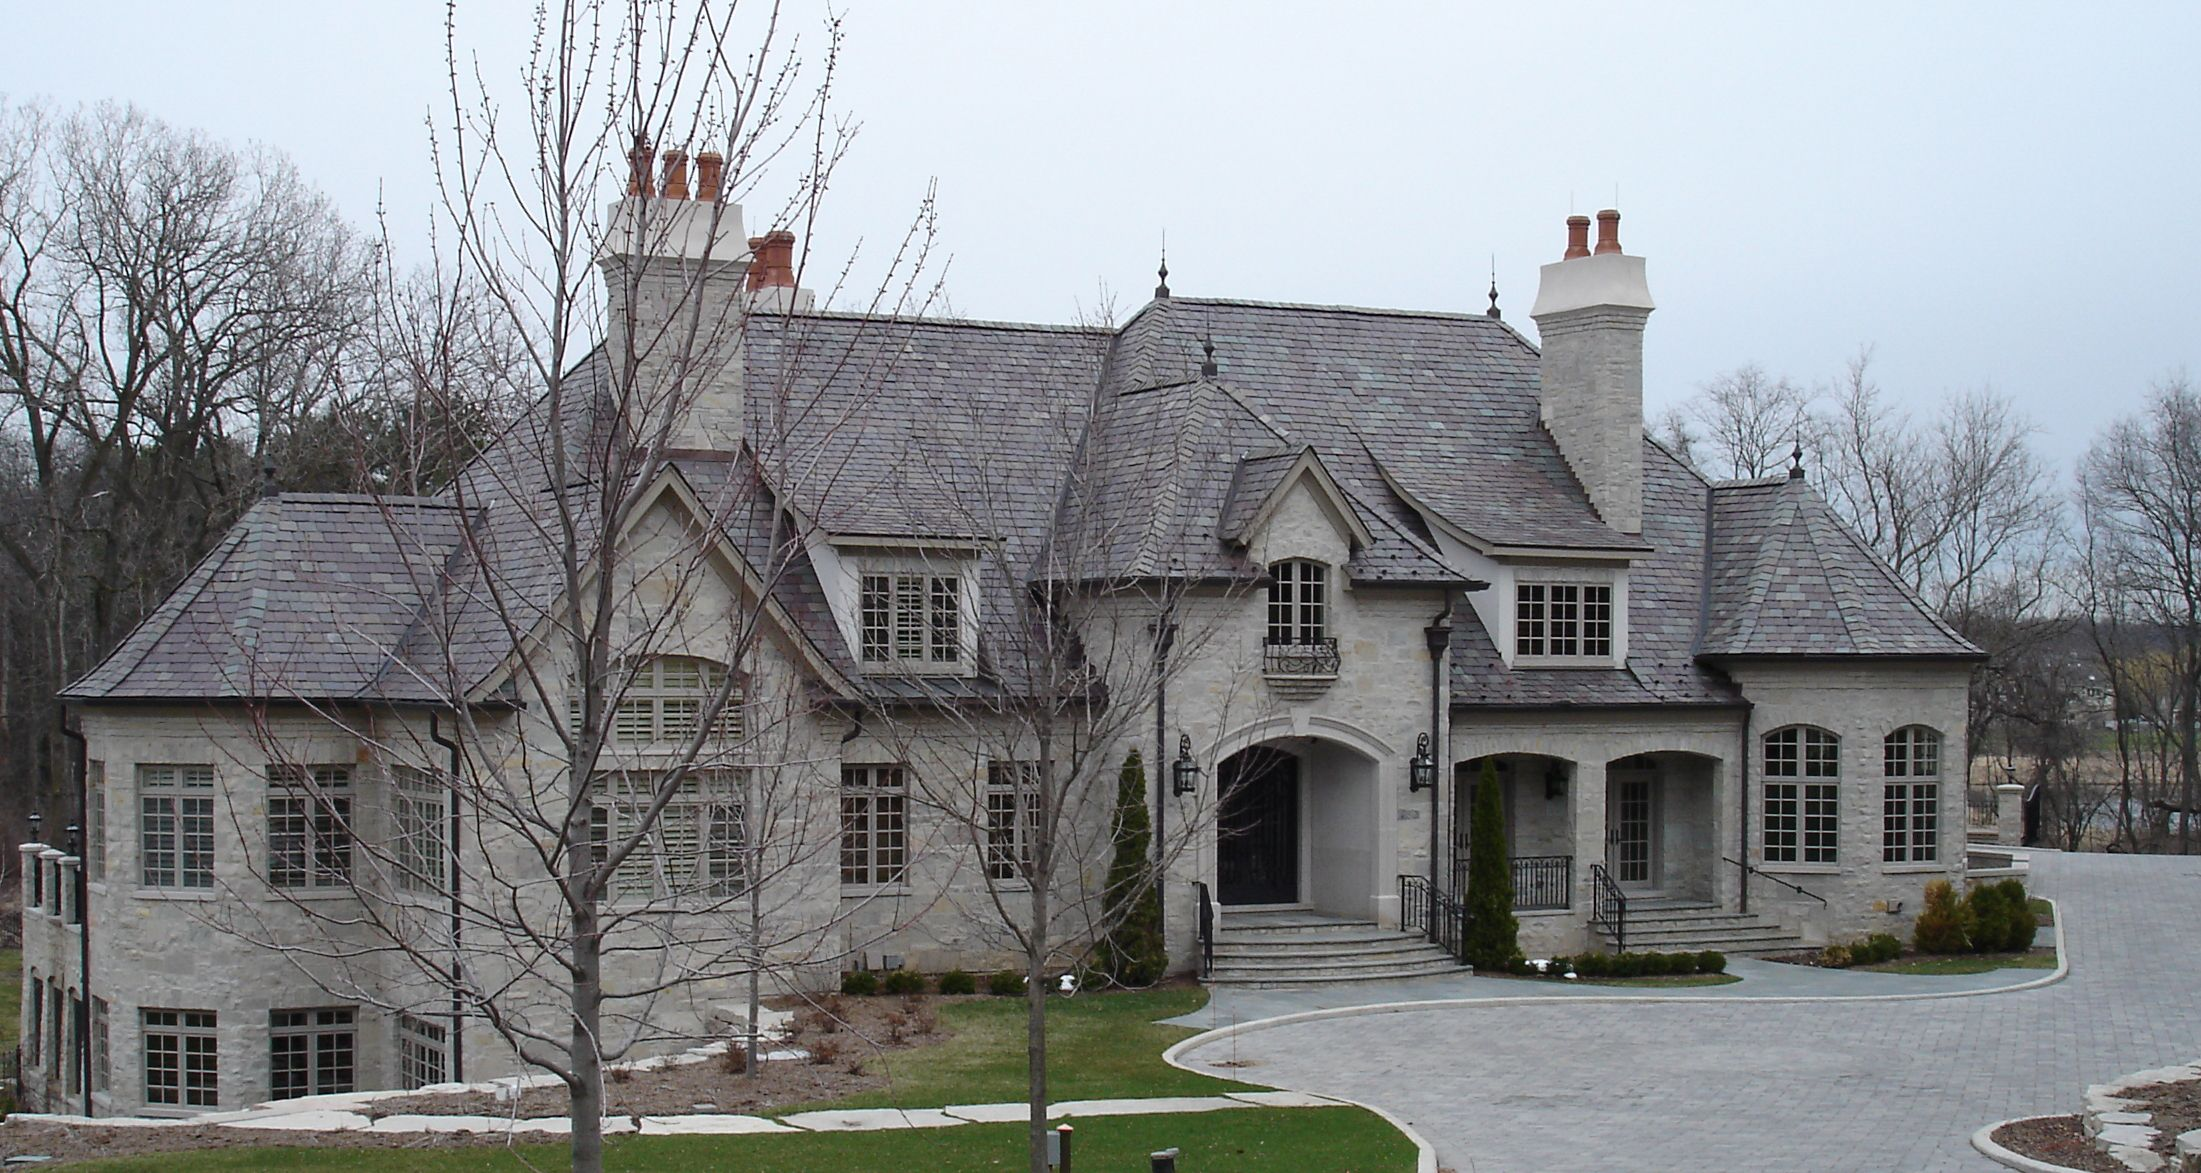 St. Charles Property. McAlpine Architects https://www.facebook.com/mcalpinearchitects